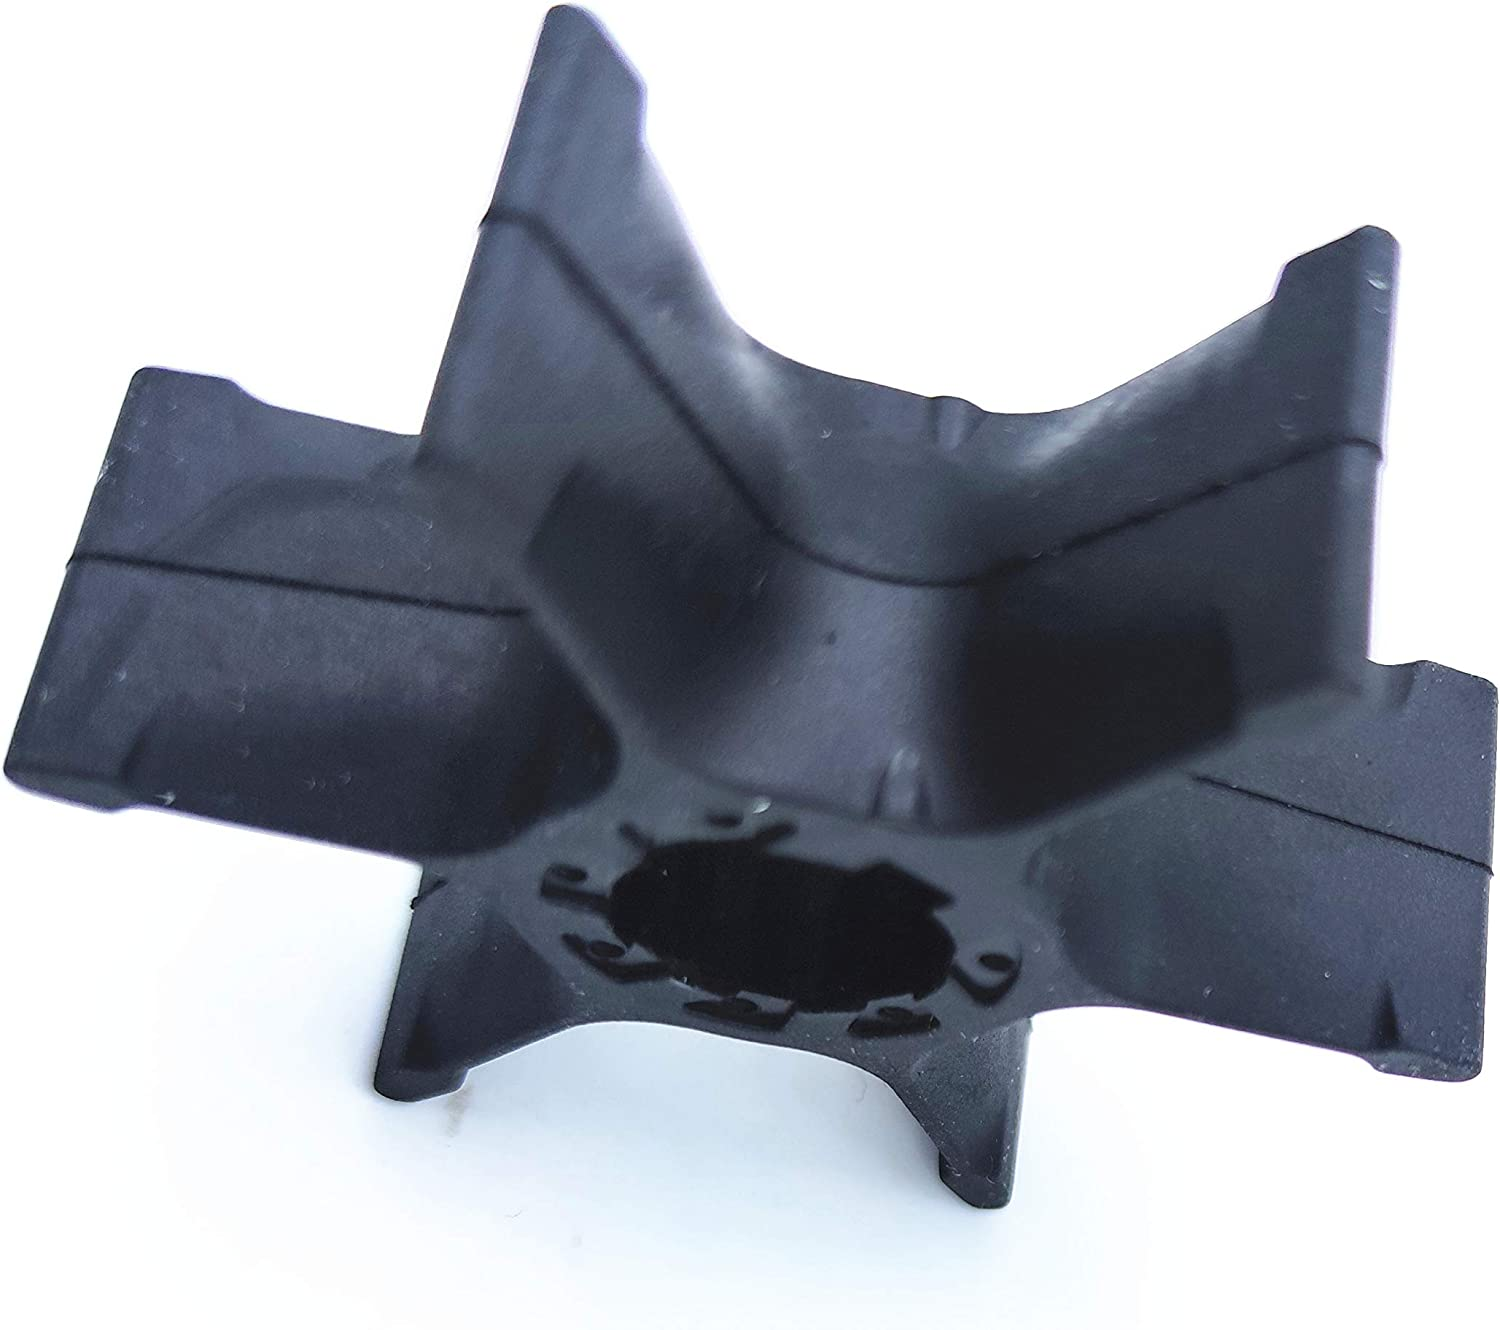 Jetunit for Yamaha Impeller Outboard 6F5-44352-00-00 99971M 18-3088 96-365-03A 9-45606 2-stroke 2 cyl.40hp